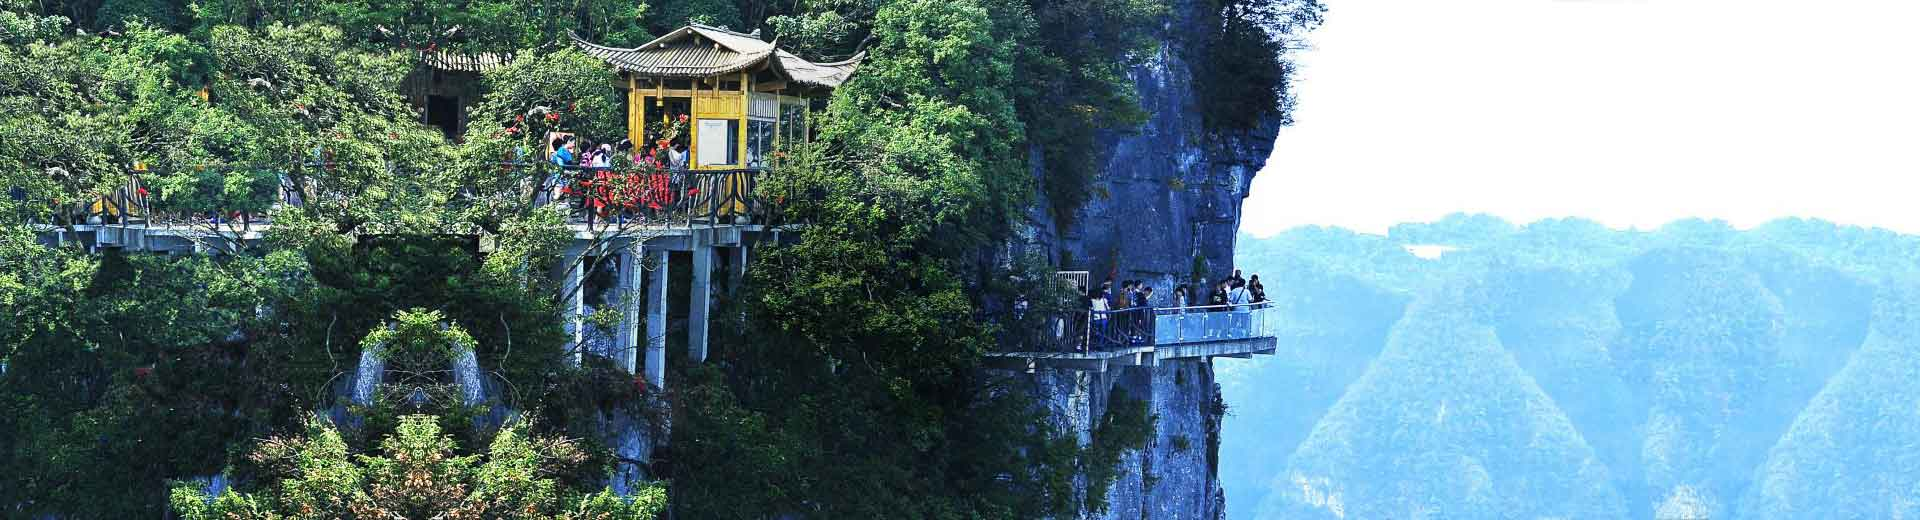 Adventure on the Breathtaking Glass Skywalk at Tianmen Mountain